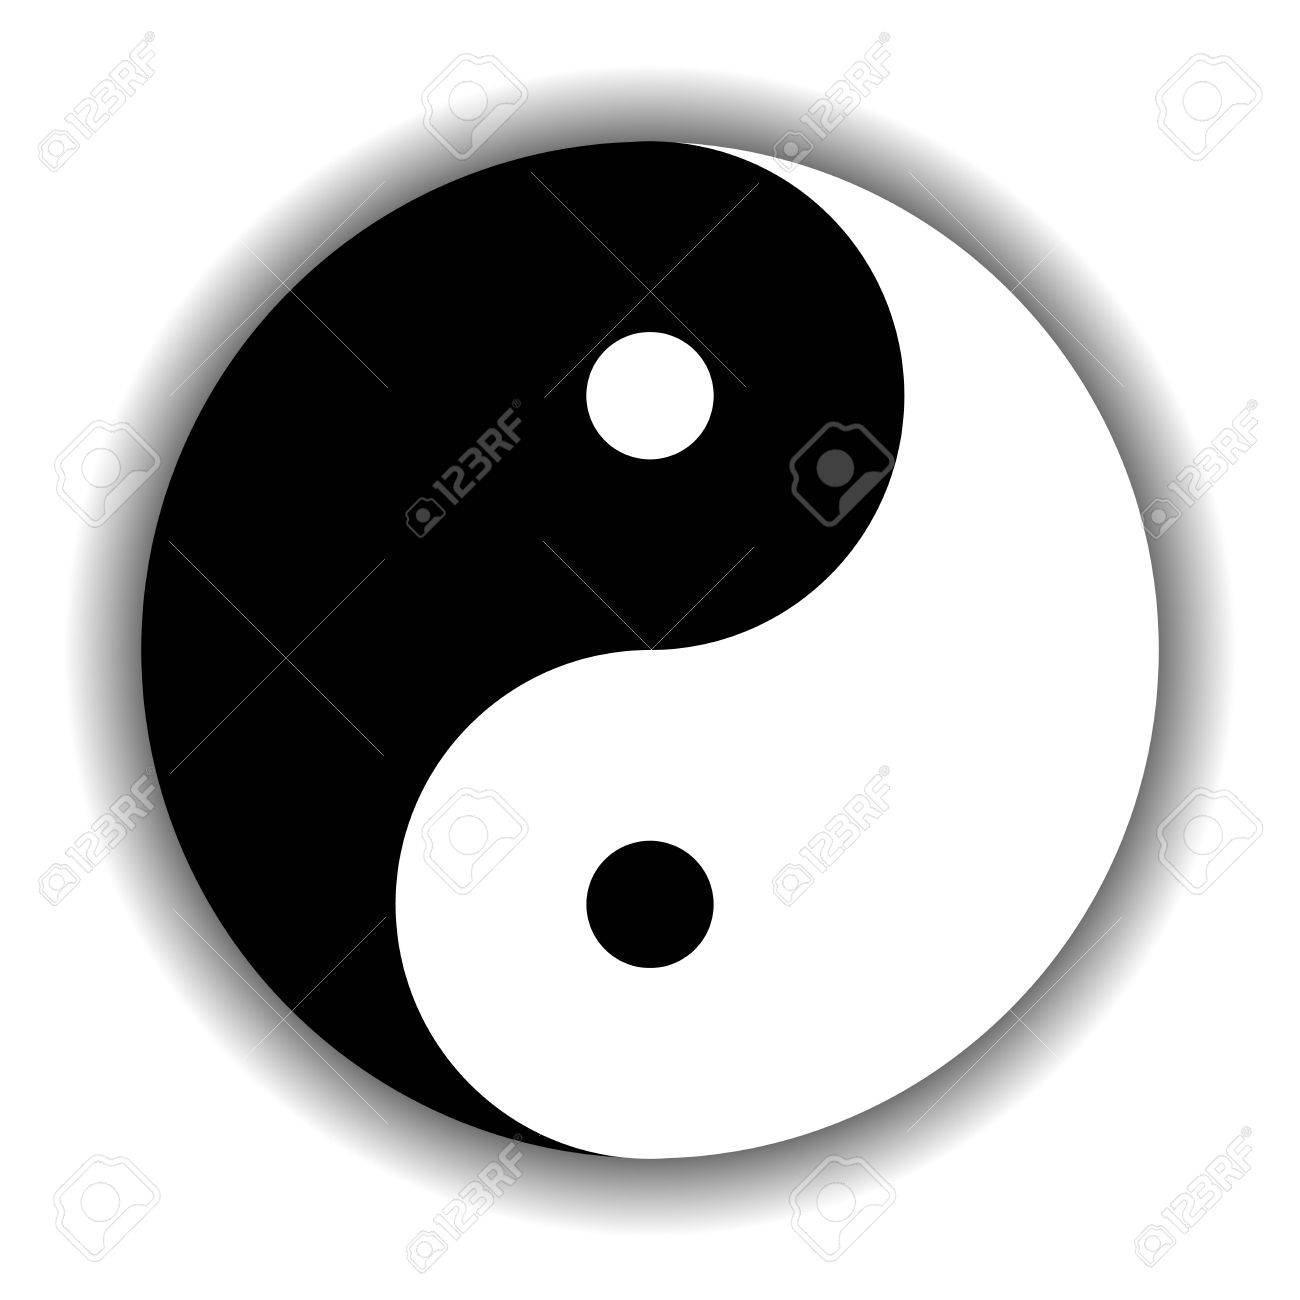 Yin Yang Symbol Icon Of Chinese Phylosophy Describes How Opposite